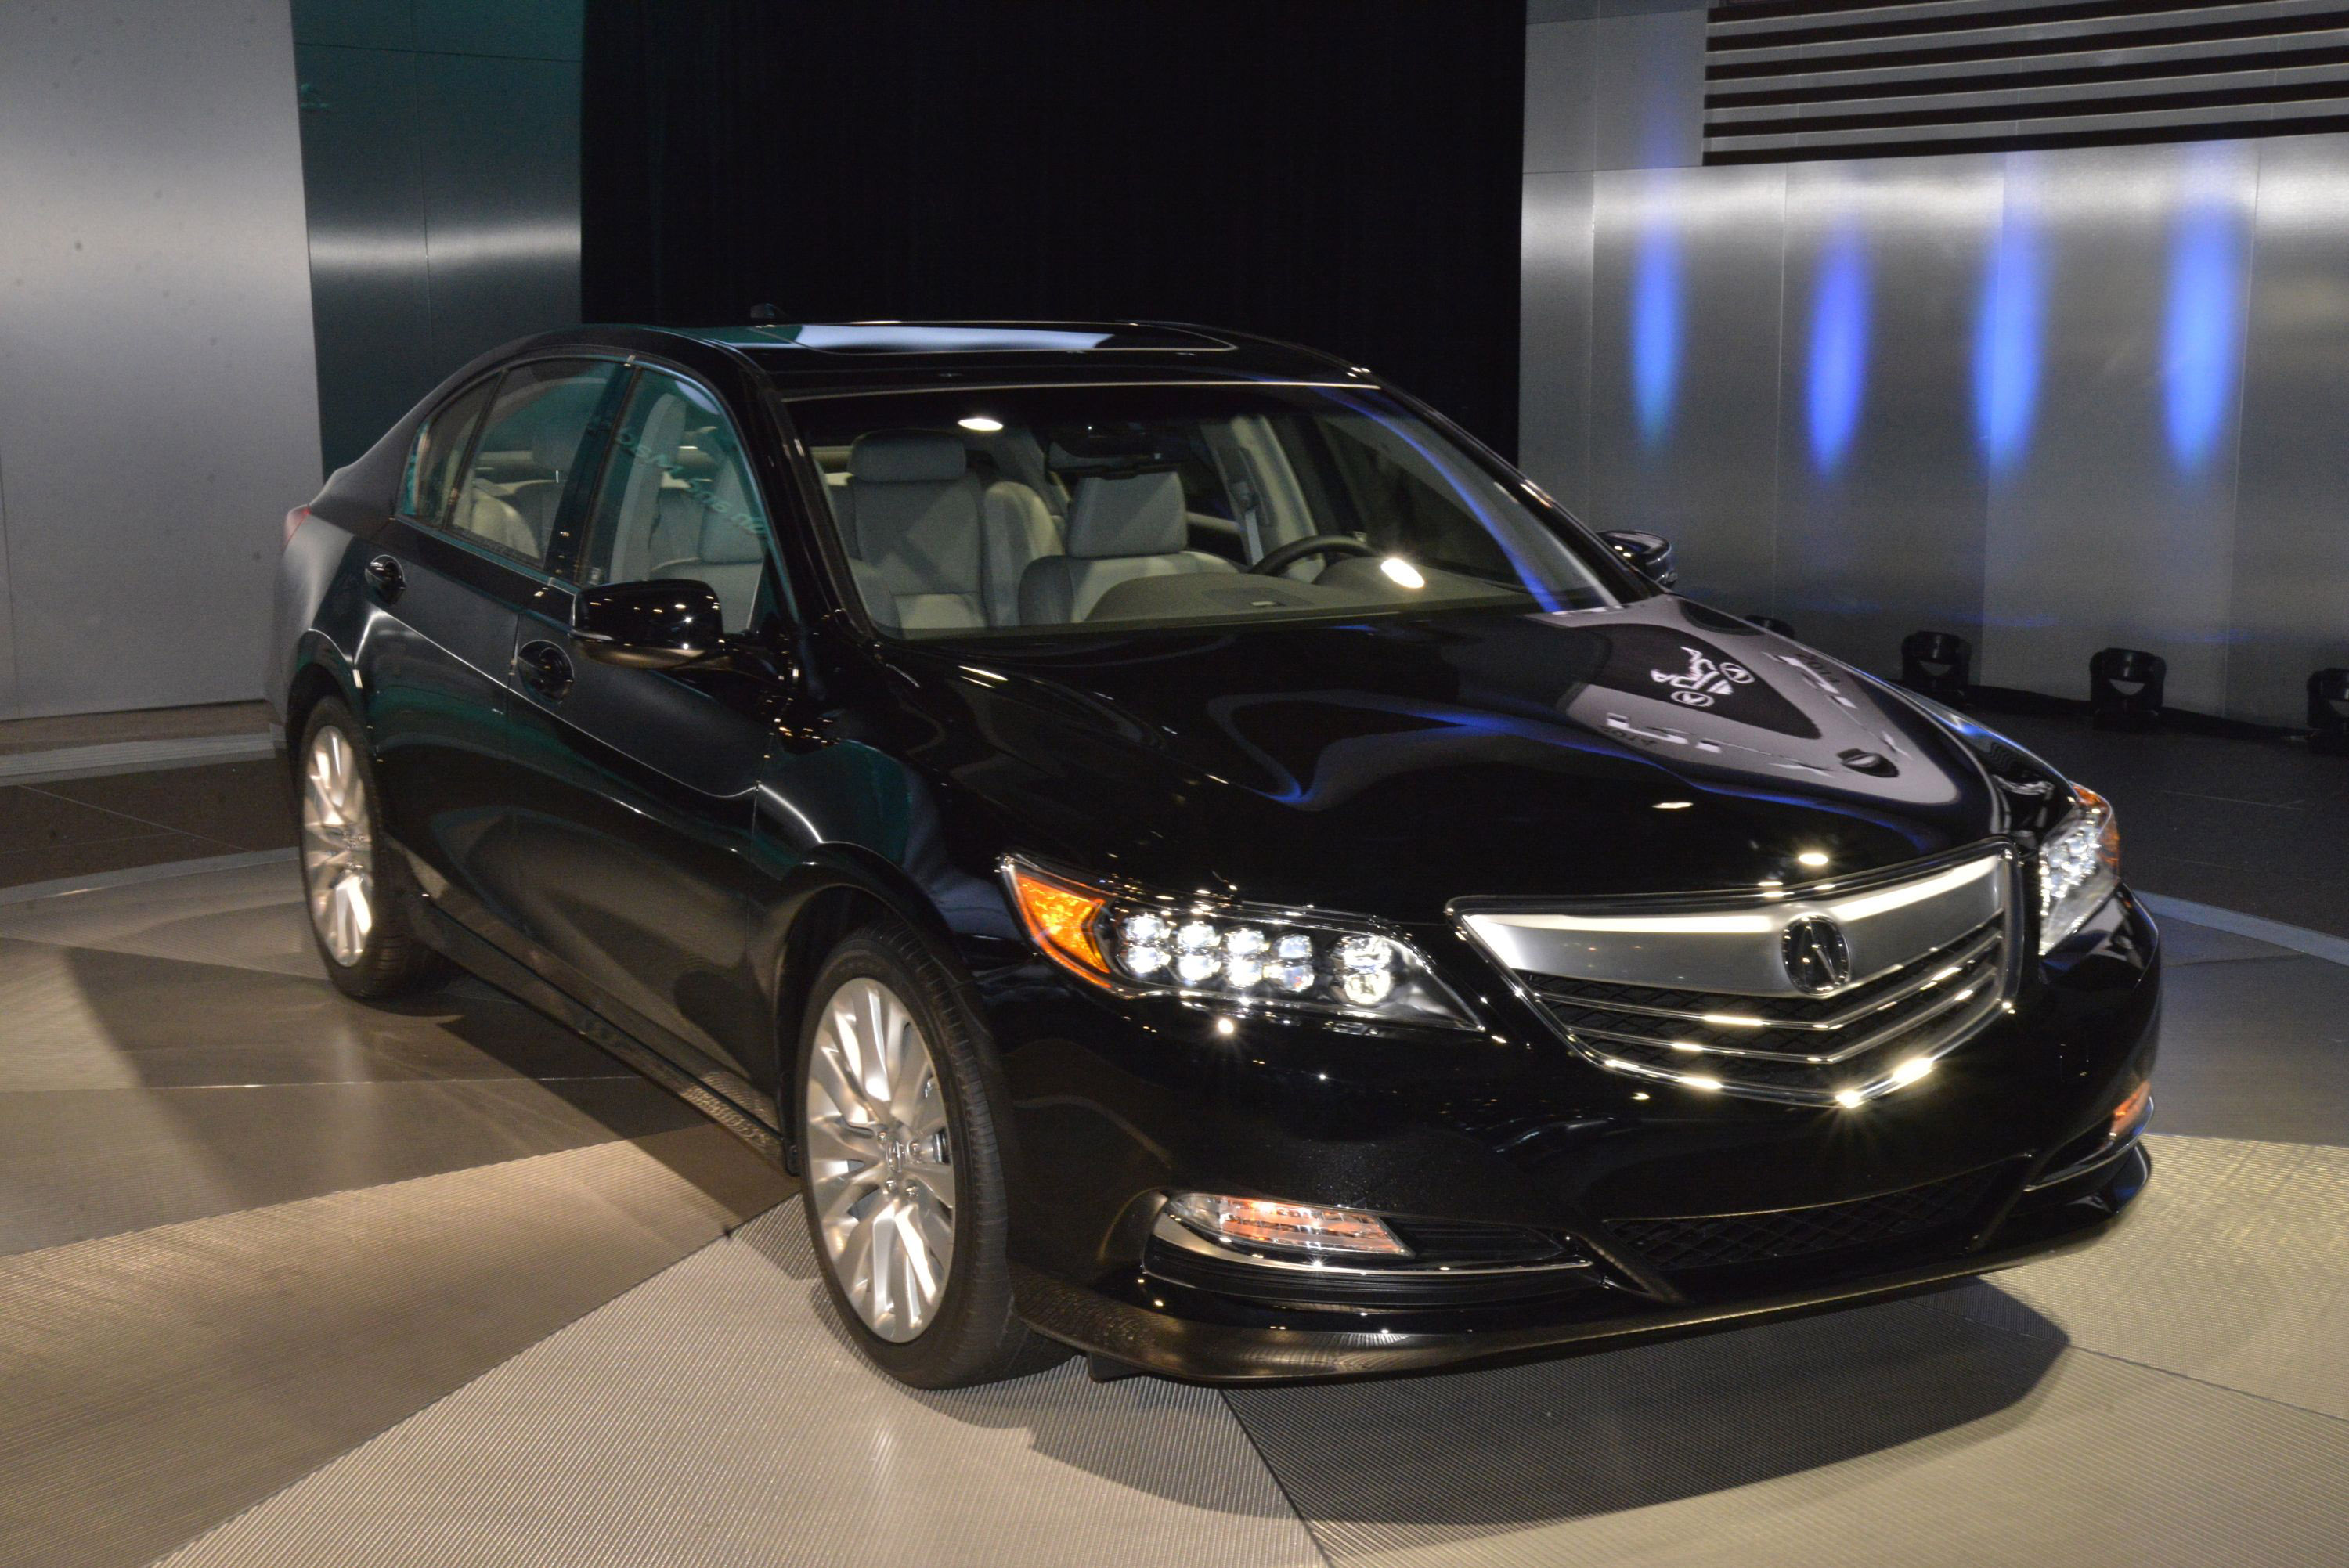 divulged gallery ilx video los tlx economy fuel angeles news auto ratings show acura of teased debut and pricing photo ahead